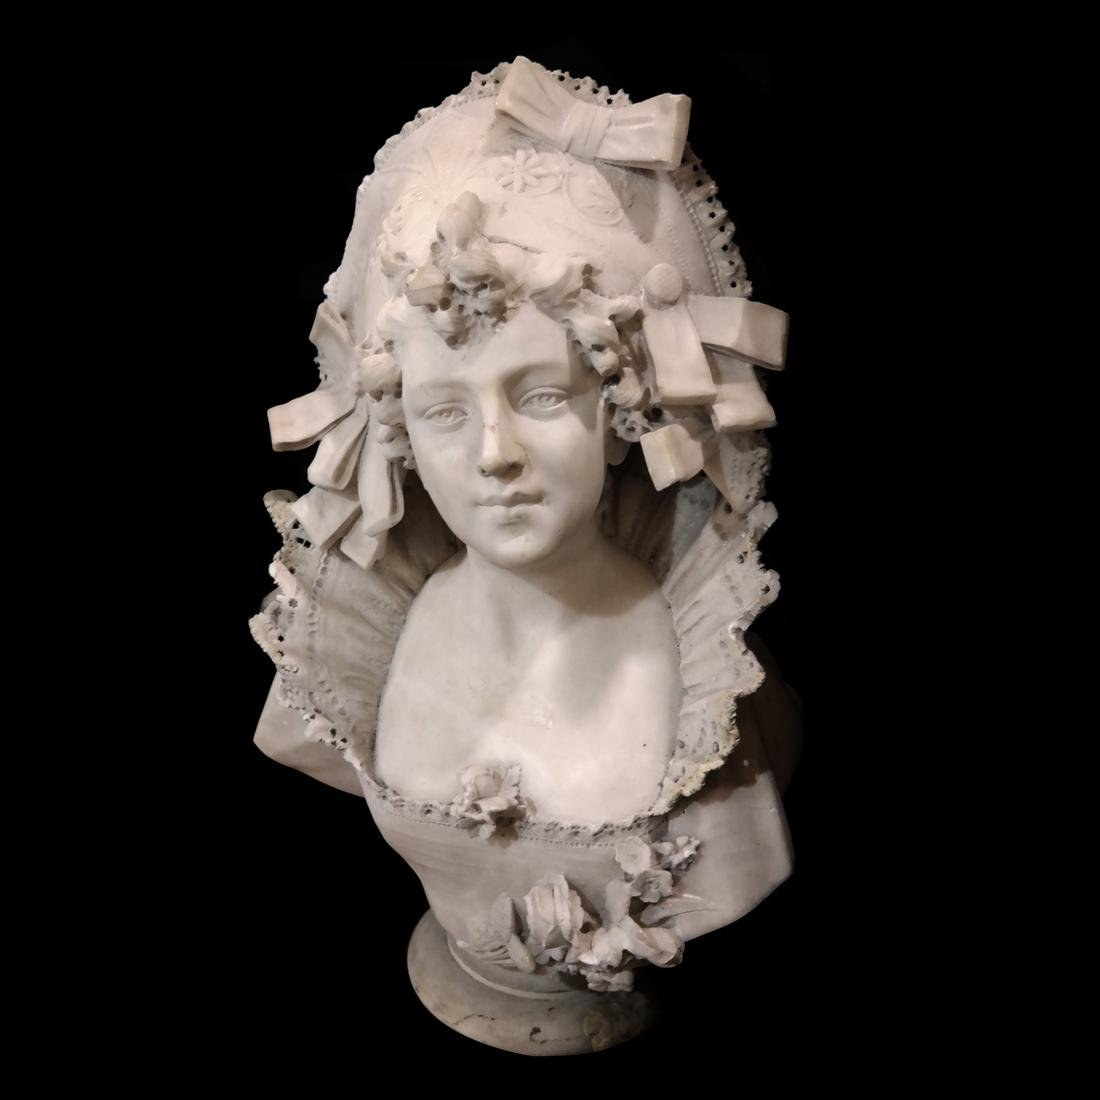 Vichi, 19th Century Marble Female Bust